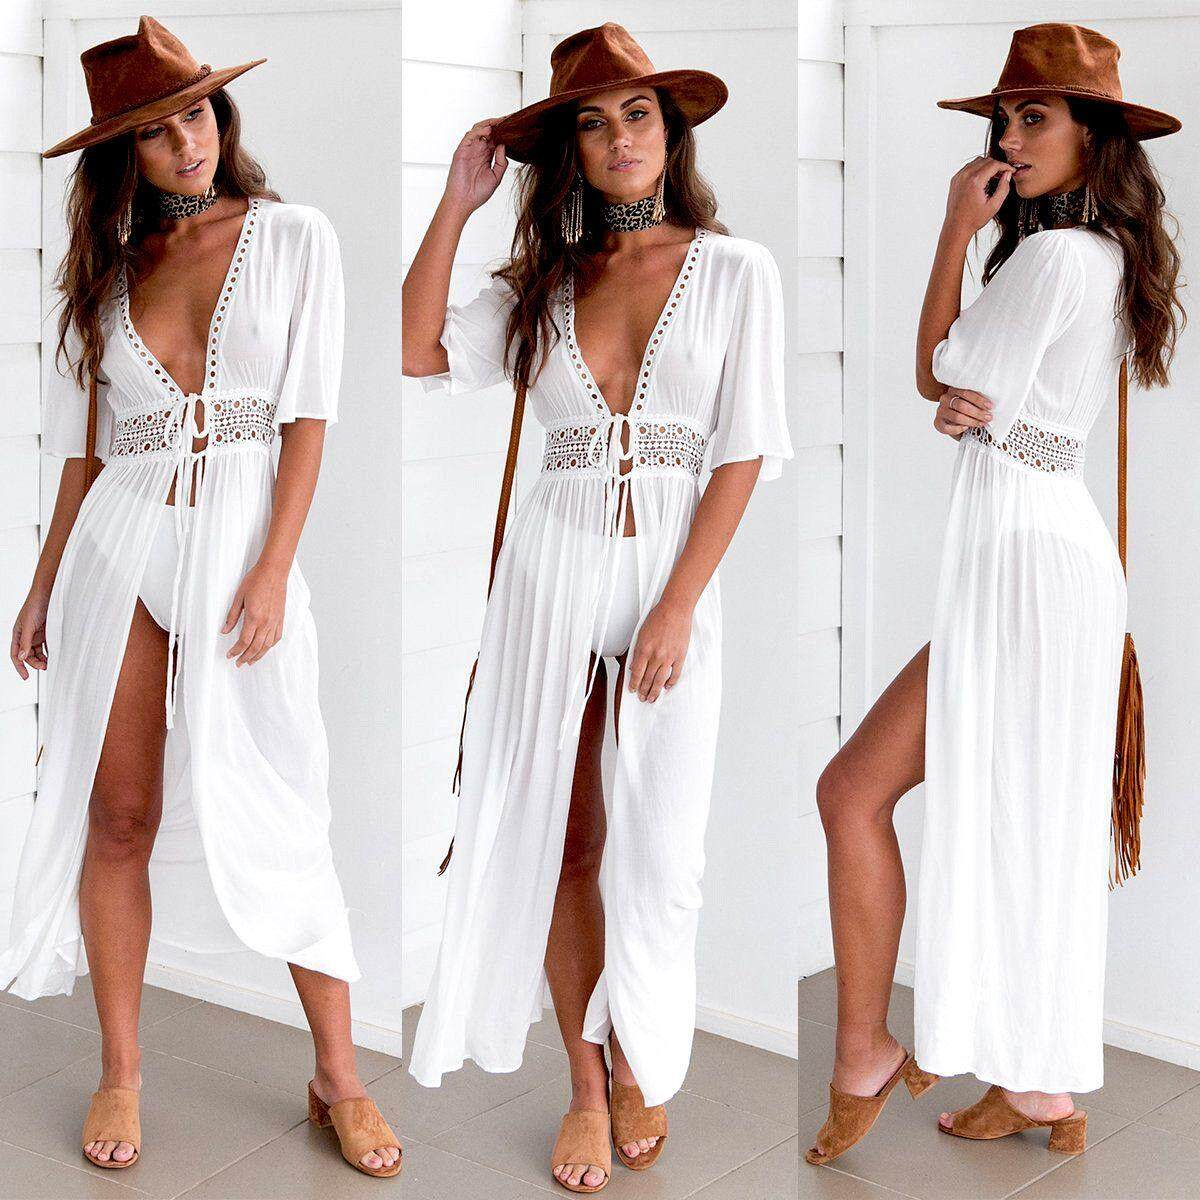 a36e27c981 Women Beach Bikini Cover up Long Kaftan dress Summer Boho Maxi Dress  Swimwear